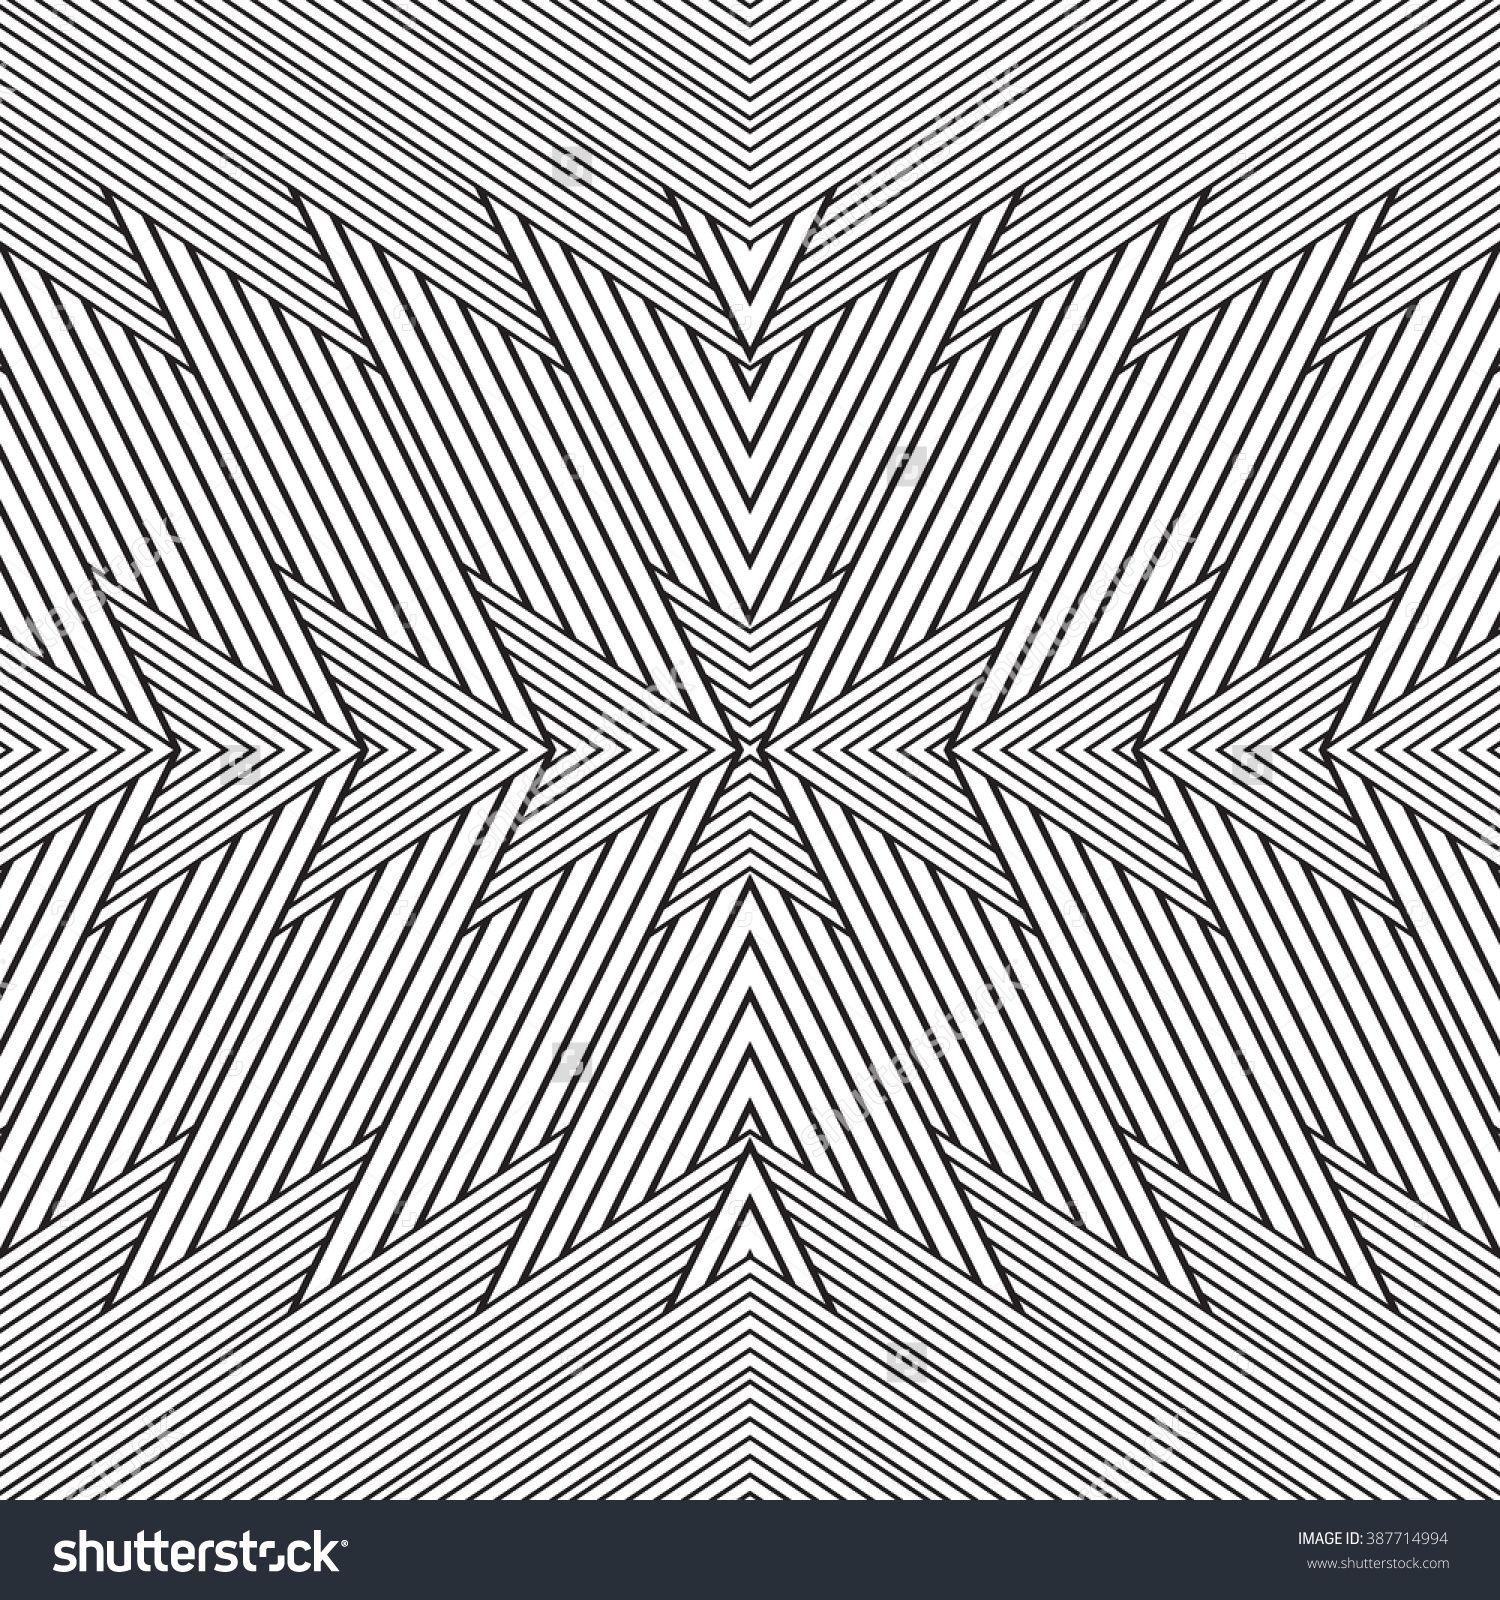 black and white geometric seamless pattern  simple regular